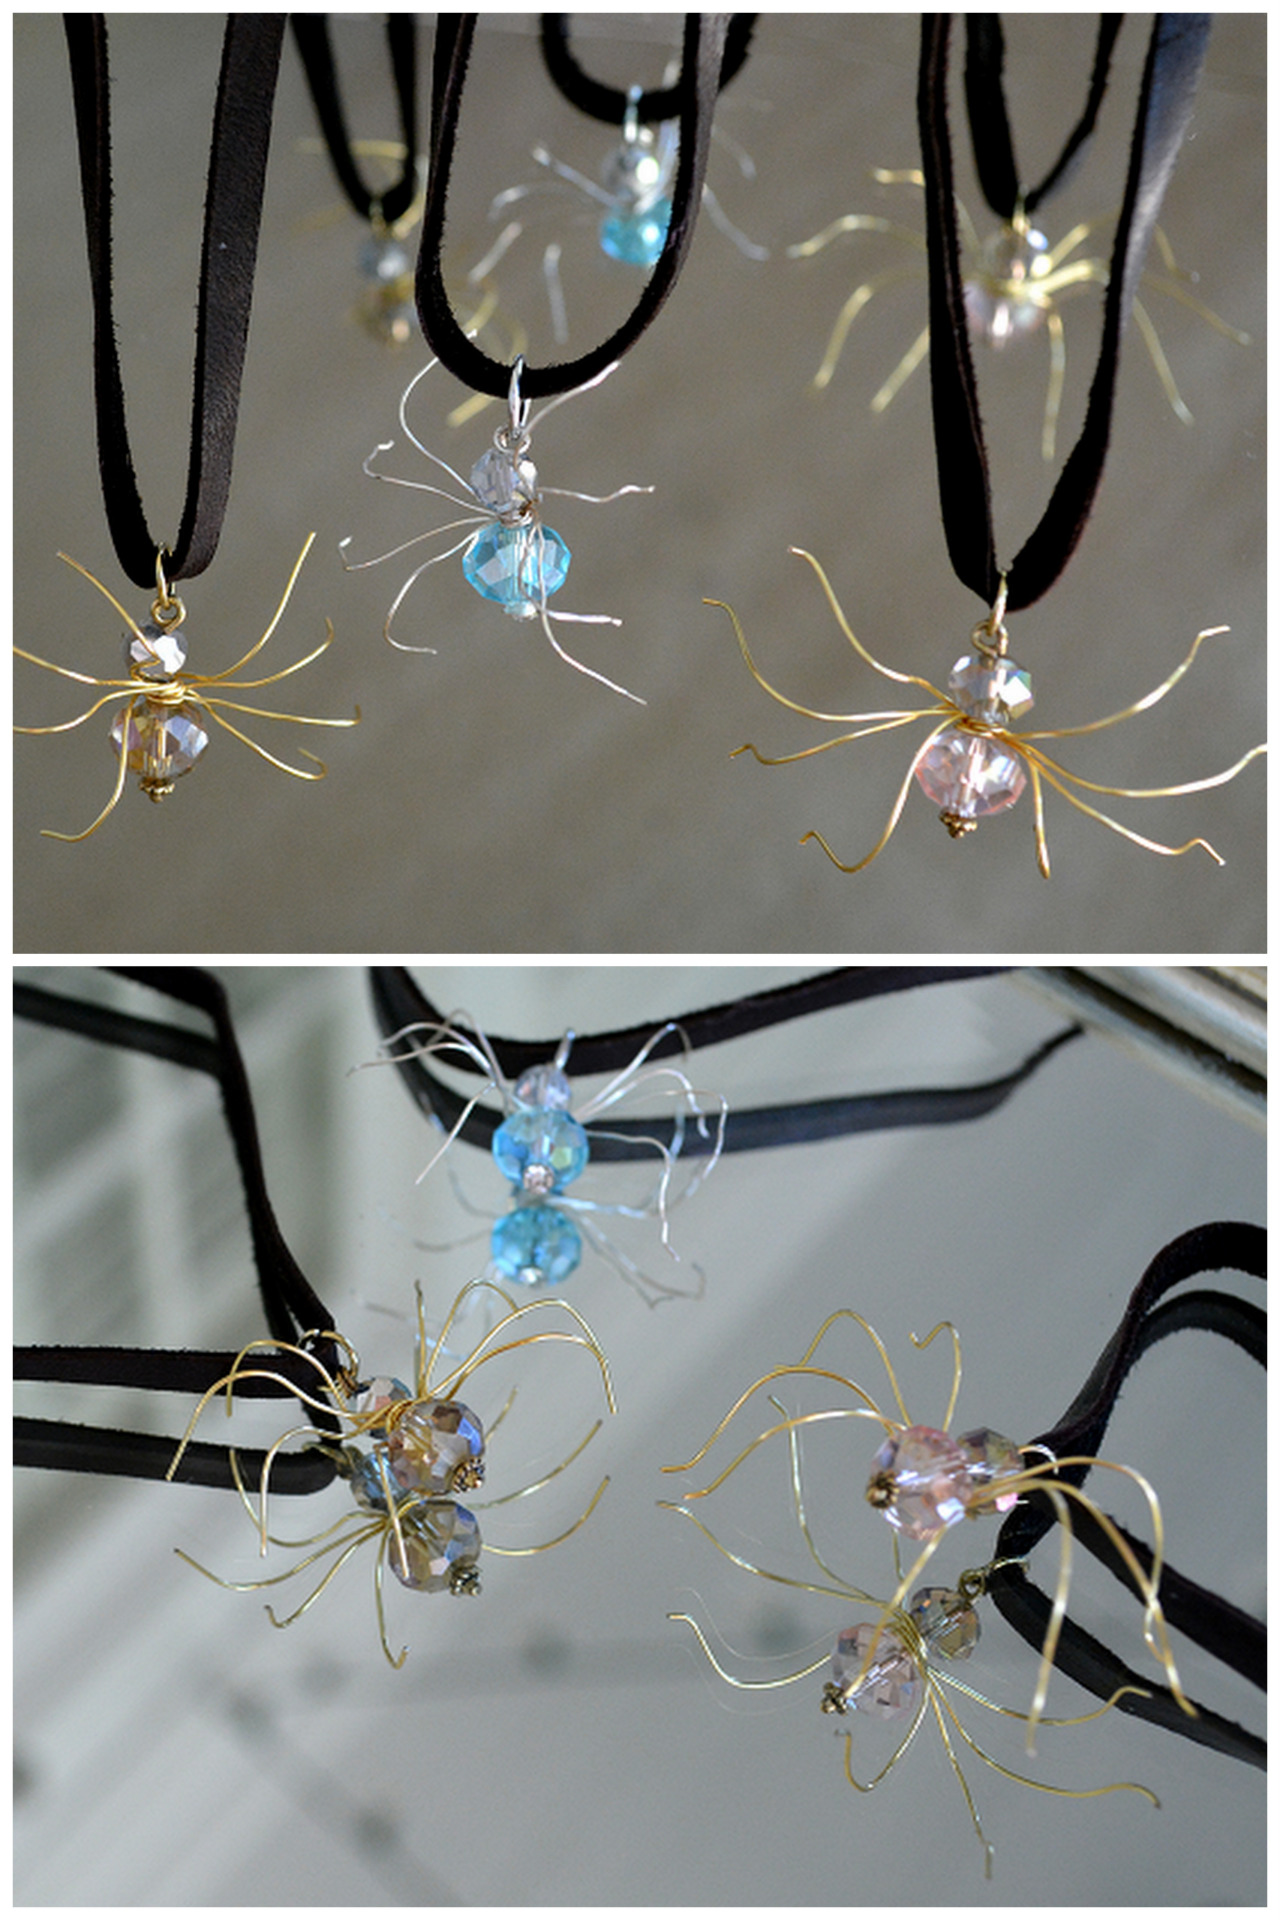 Diy wire spiders